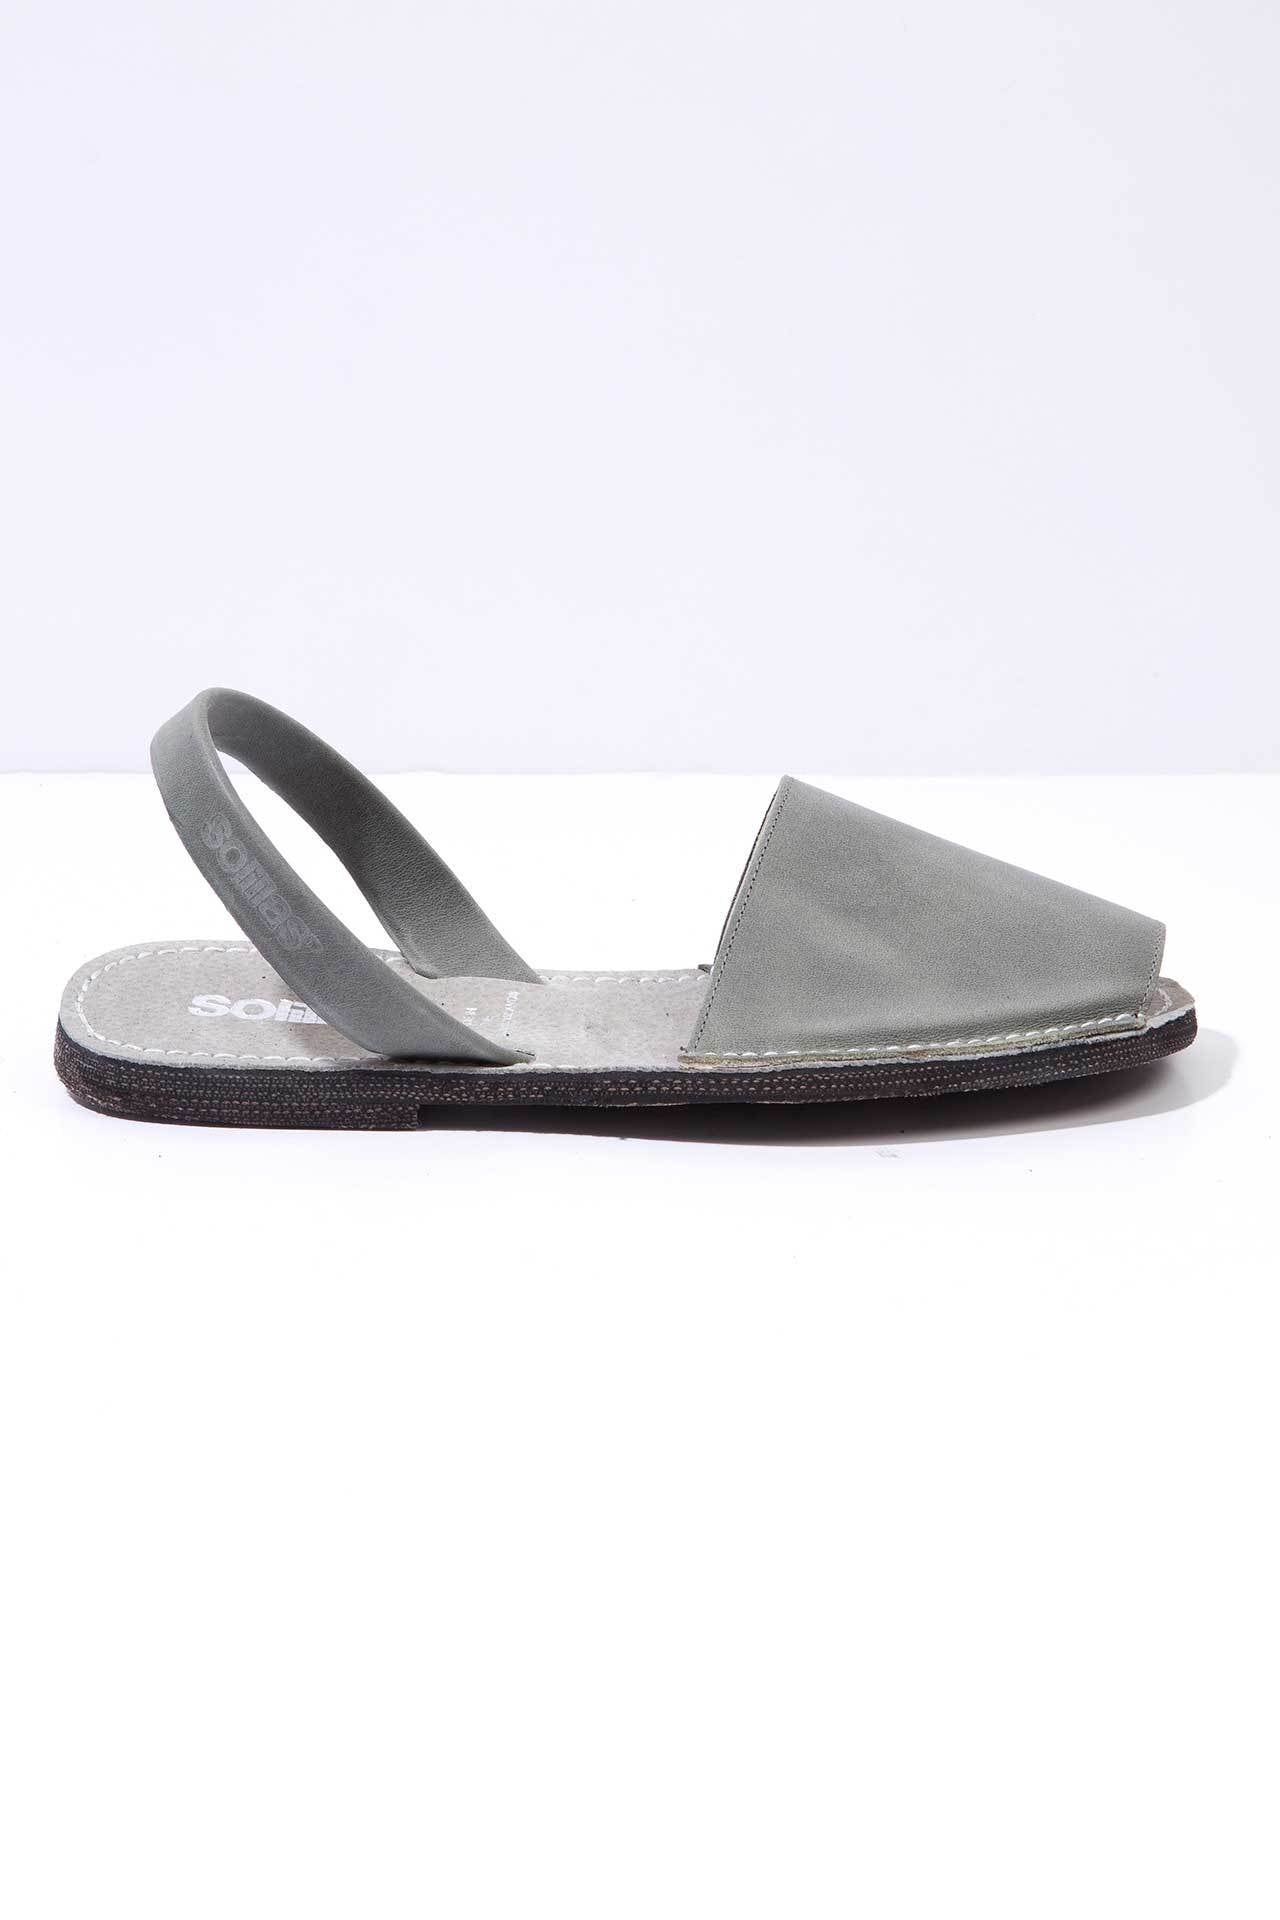 Carbono - Leather Tyre Sole Men's sandals